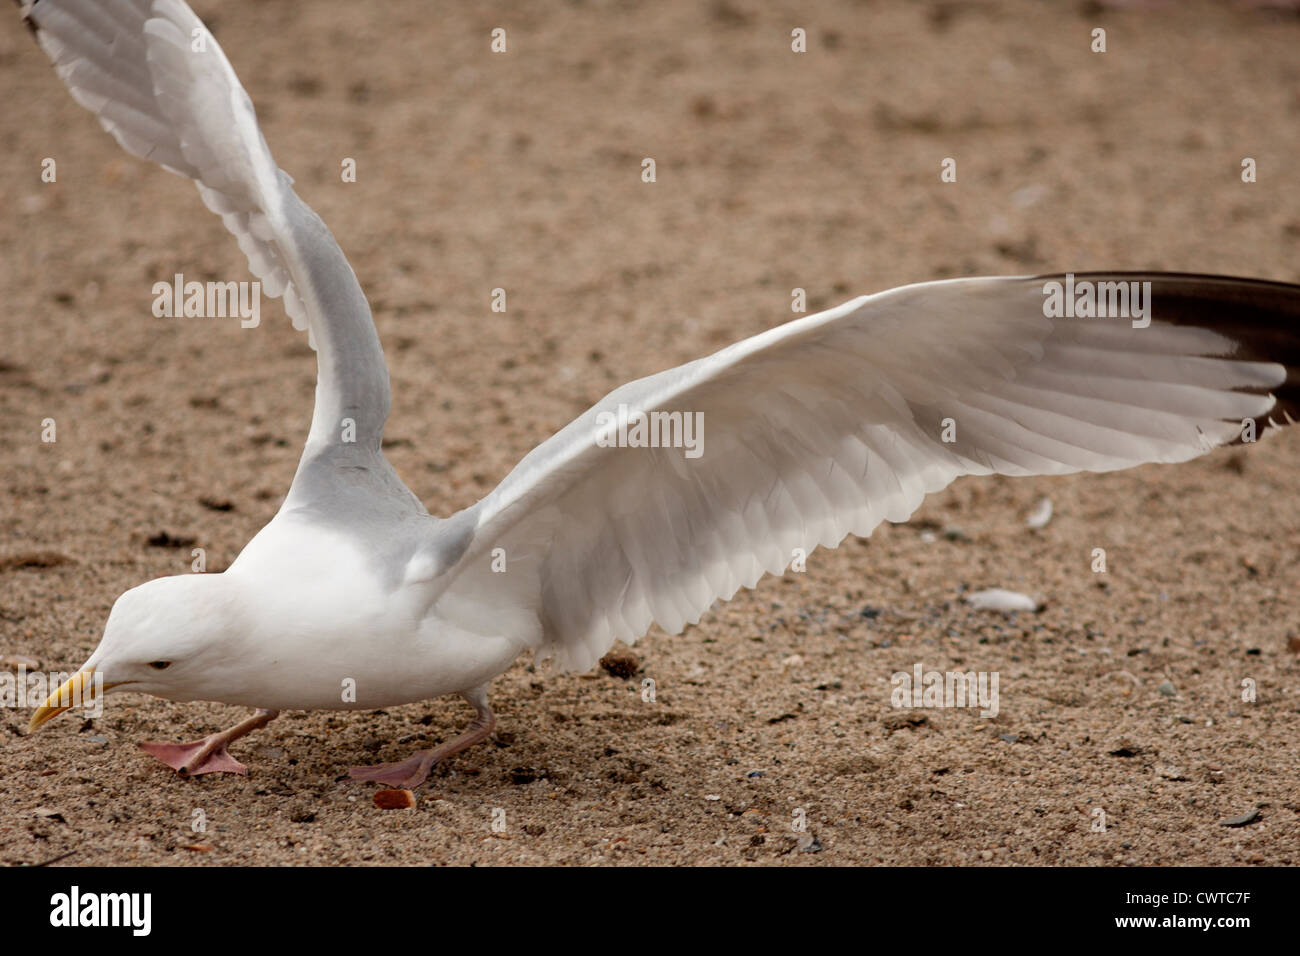 Seagull Bird landing on the ground with wings open. - Stock Image